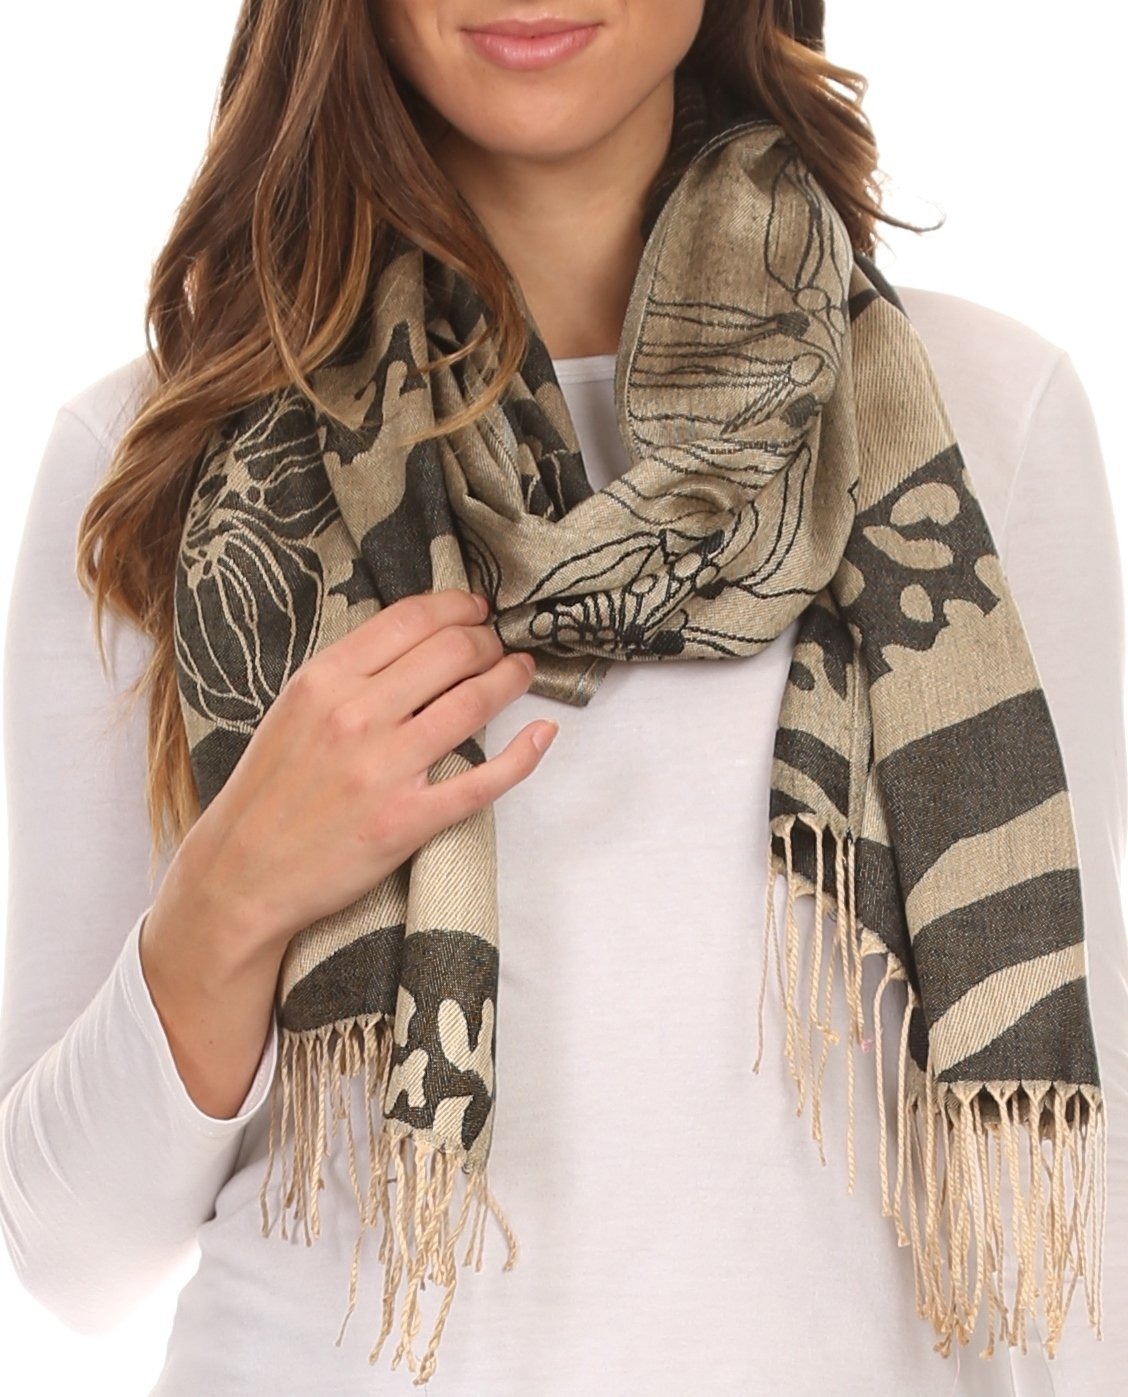 Reiley Long Wide Floral Printed Patterened Fringe Pashmina Shawl/Scarf